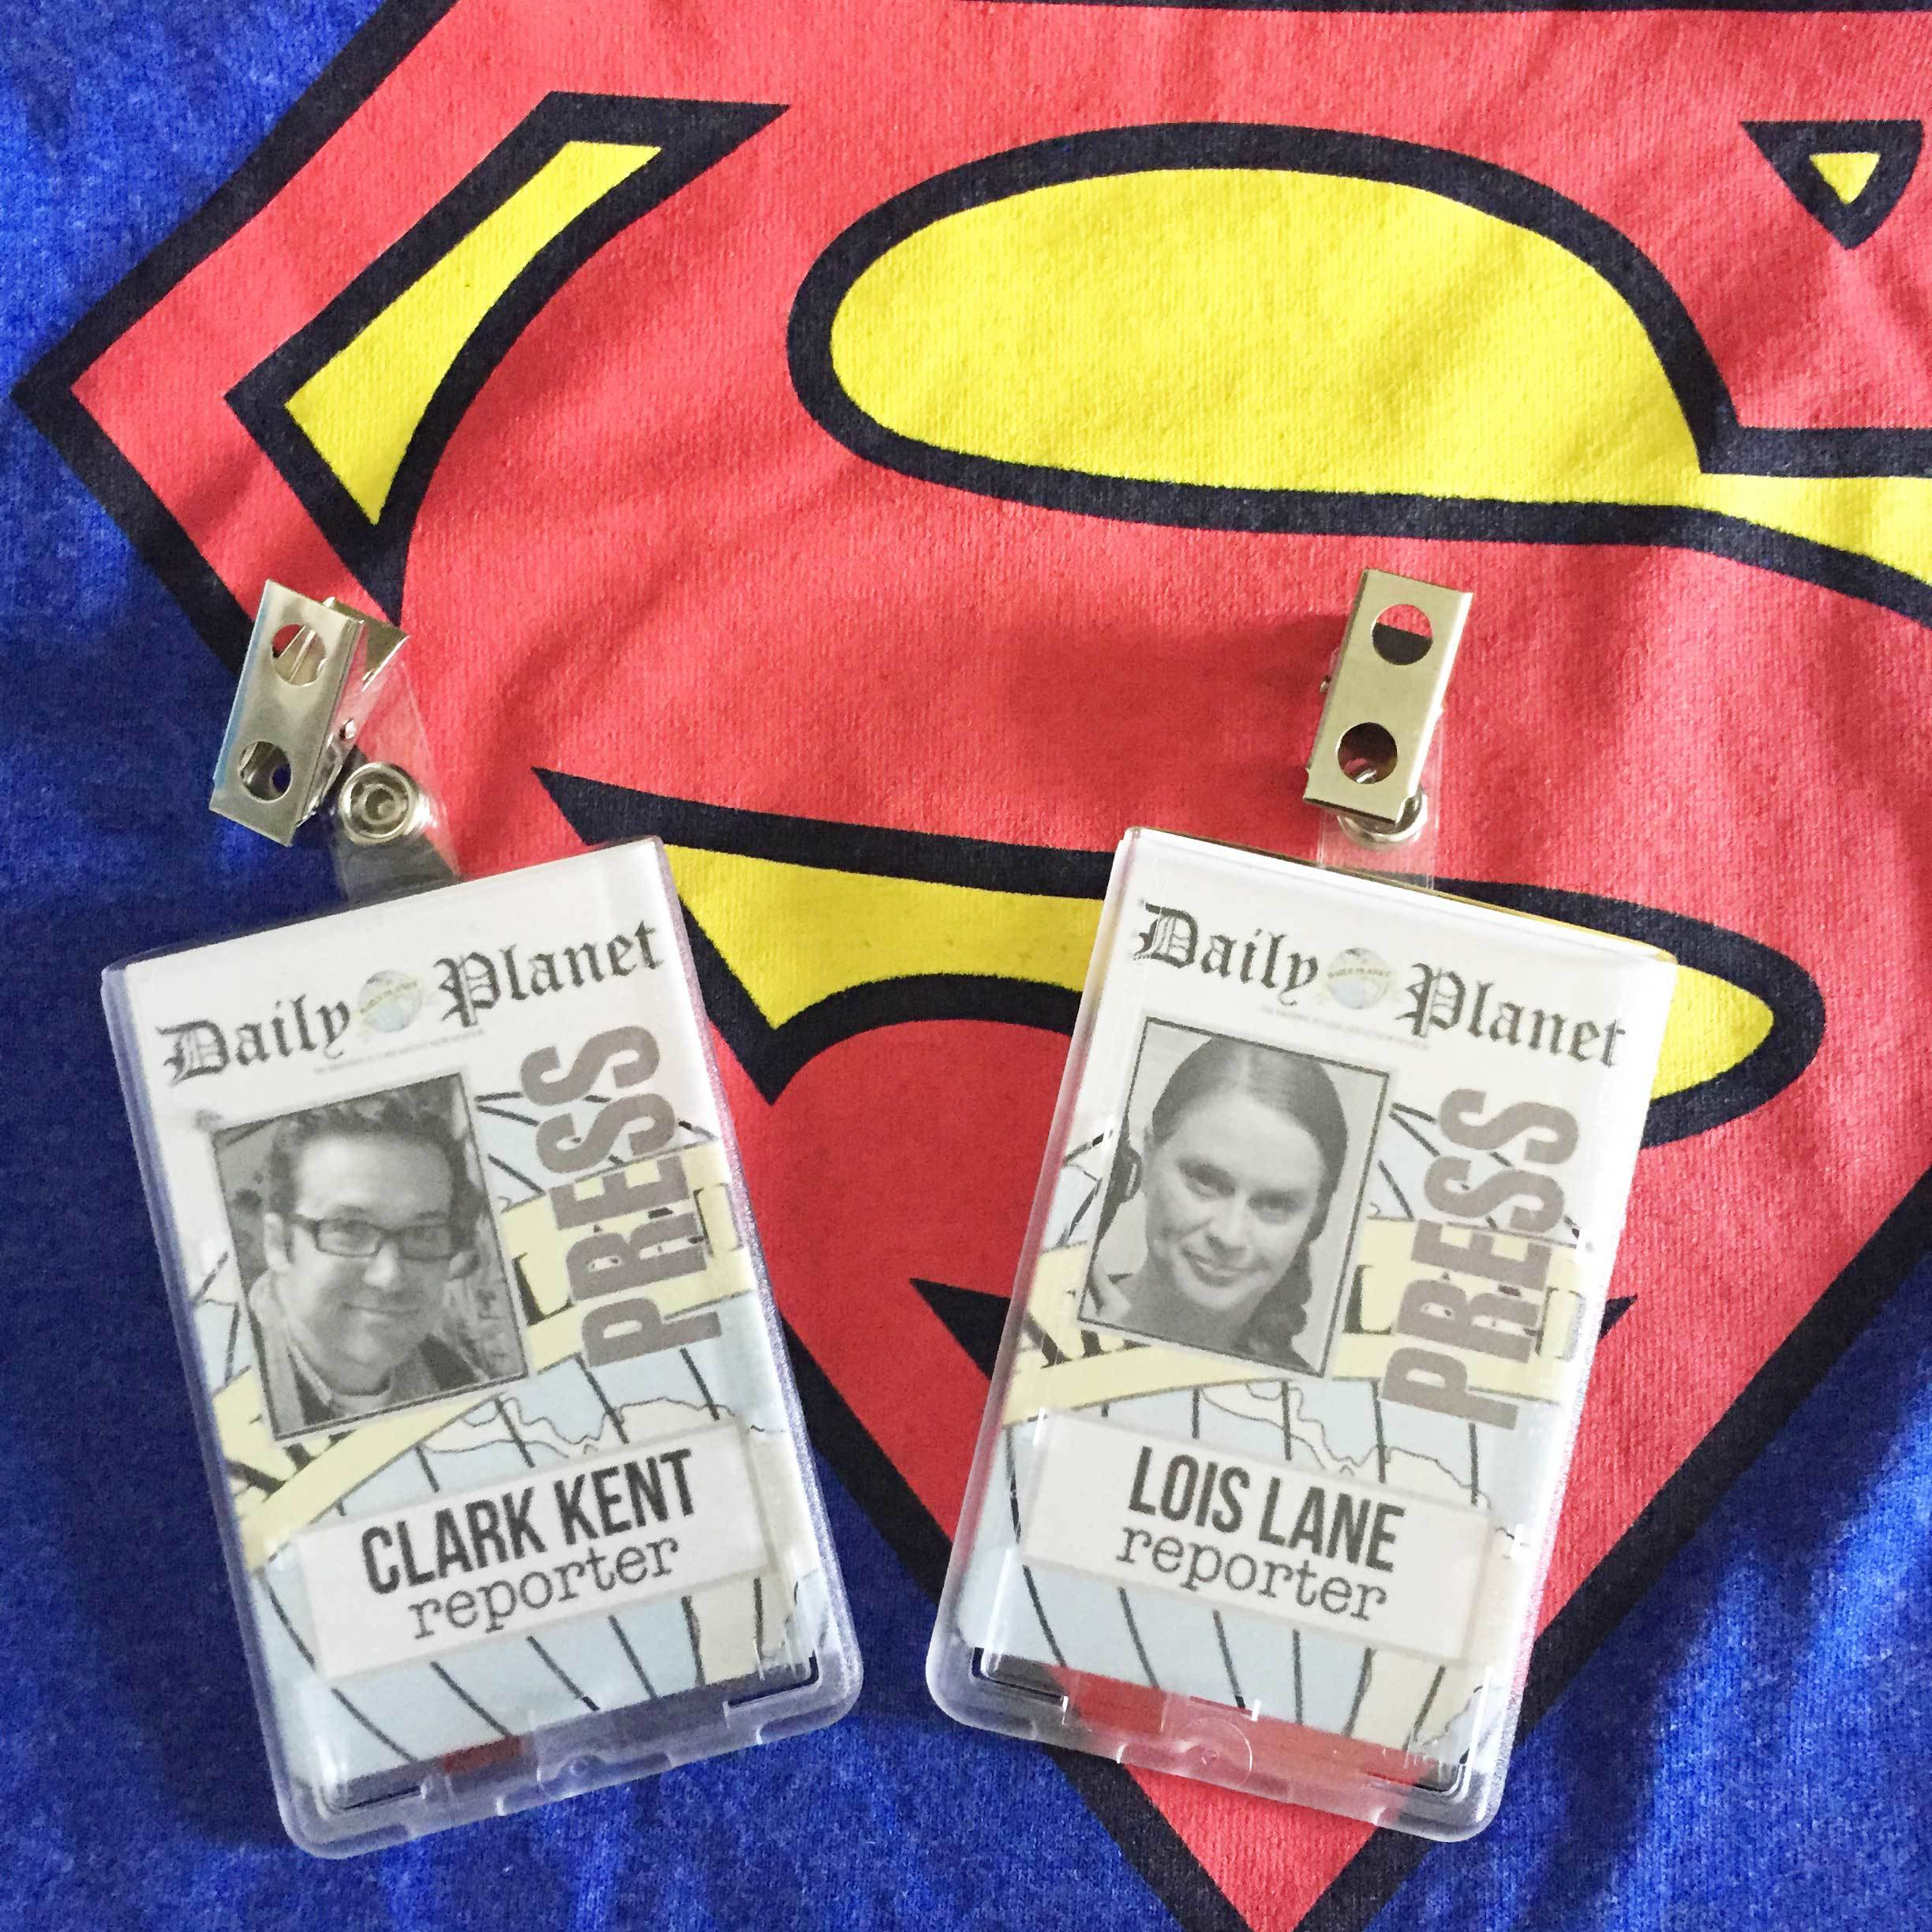 photograph about Lois Lane Press Pass Printable identify Closing Instant Partners Halloween Dress Strategy: Clark Kent